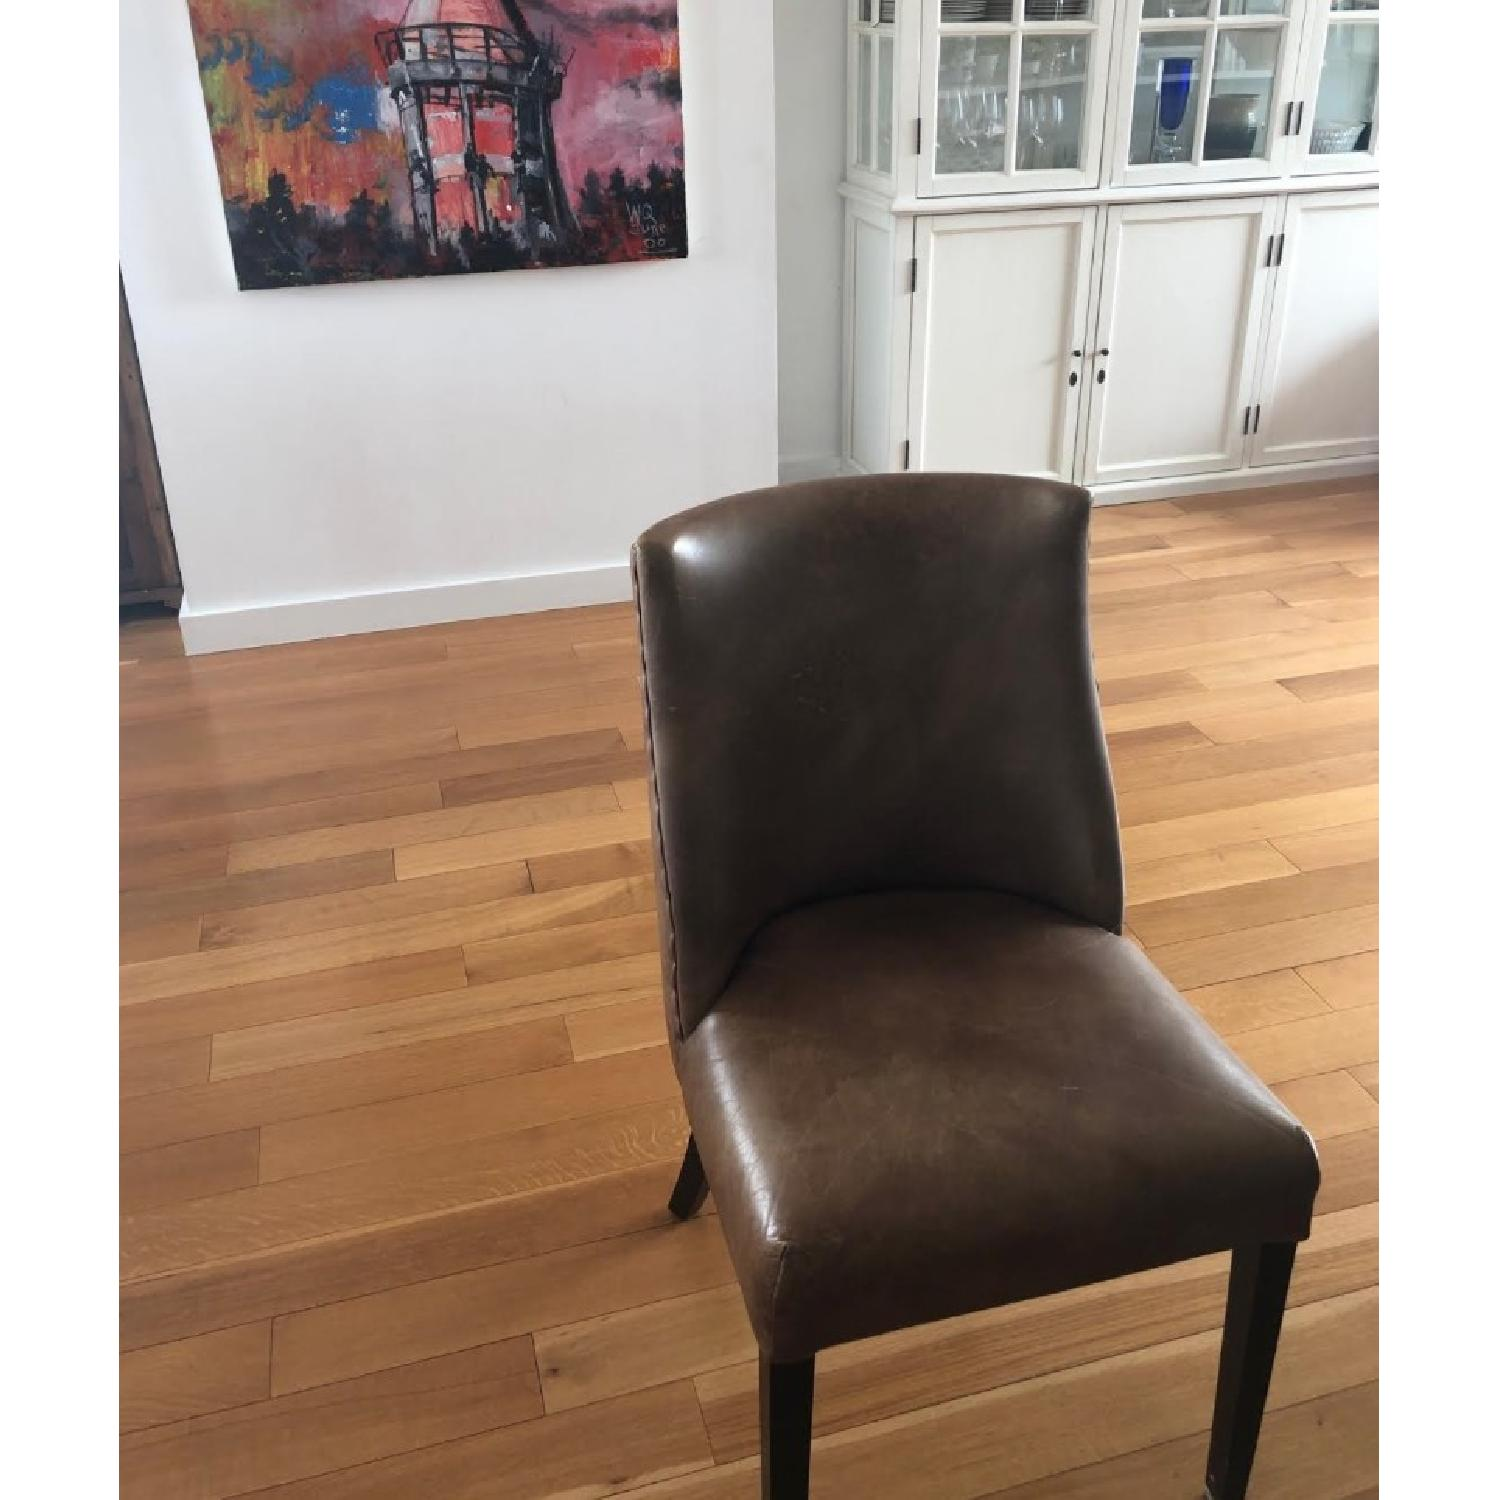 Restoration Hardware Barrel Back Nailhead Dining Chair - image-3